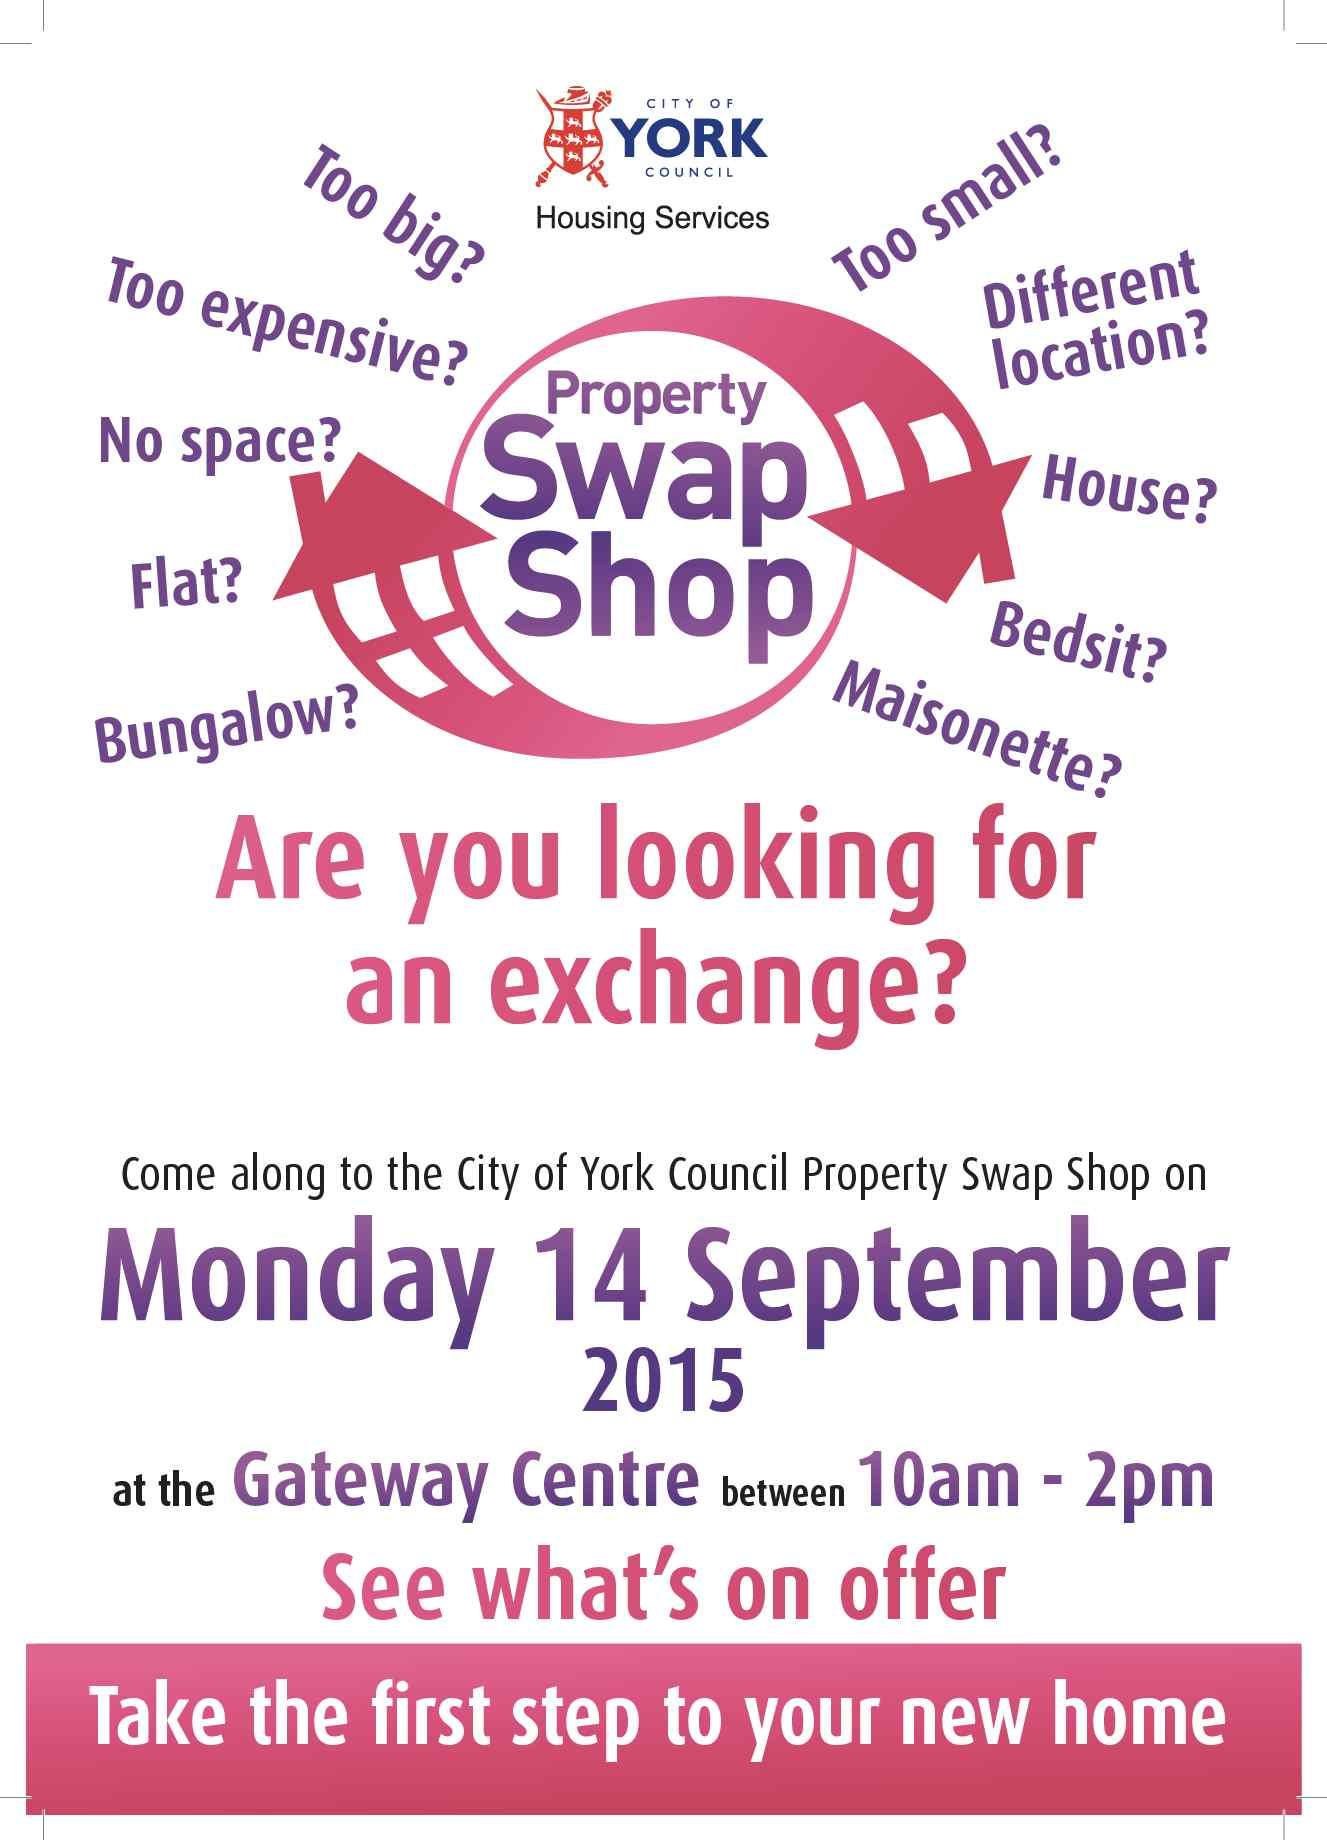 Property swap shop